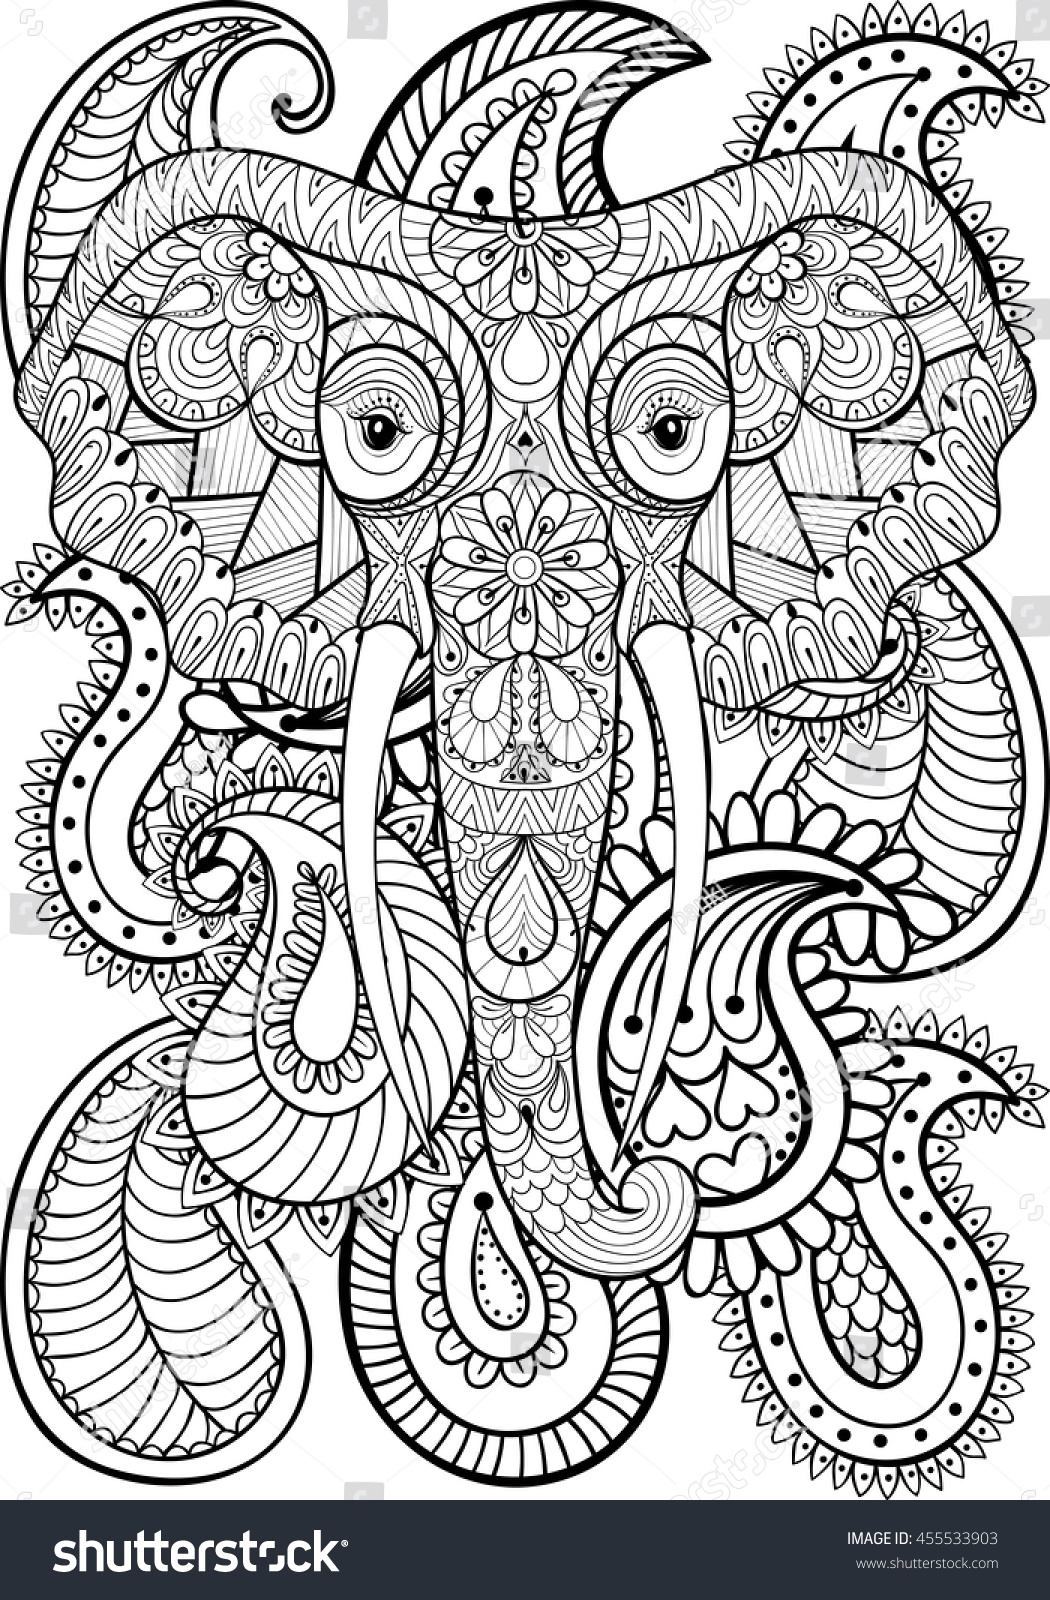 1000 images about coloring pages to print elephant on Coloring books for adults india